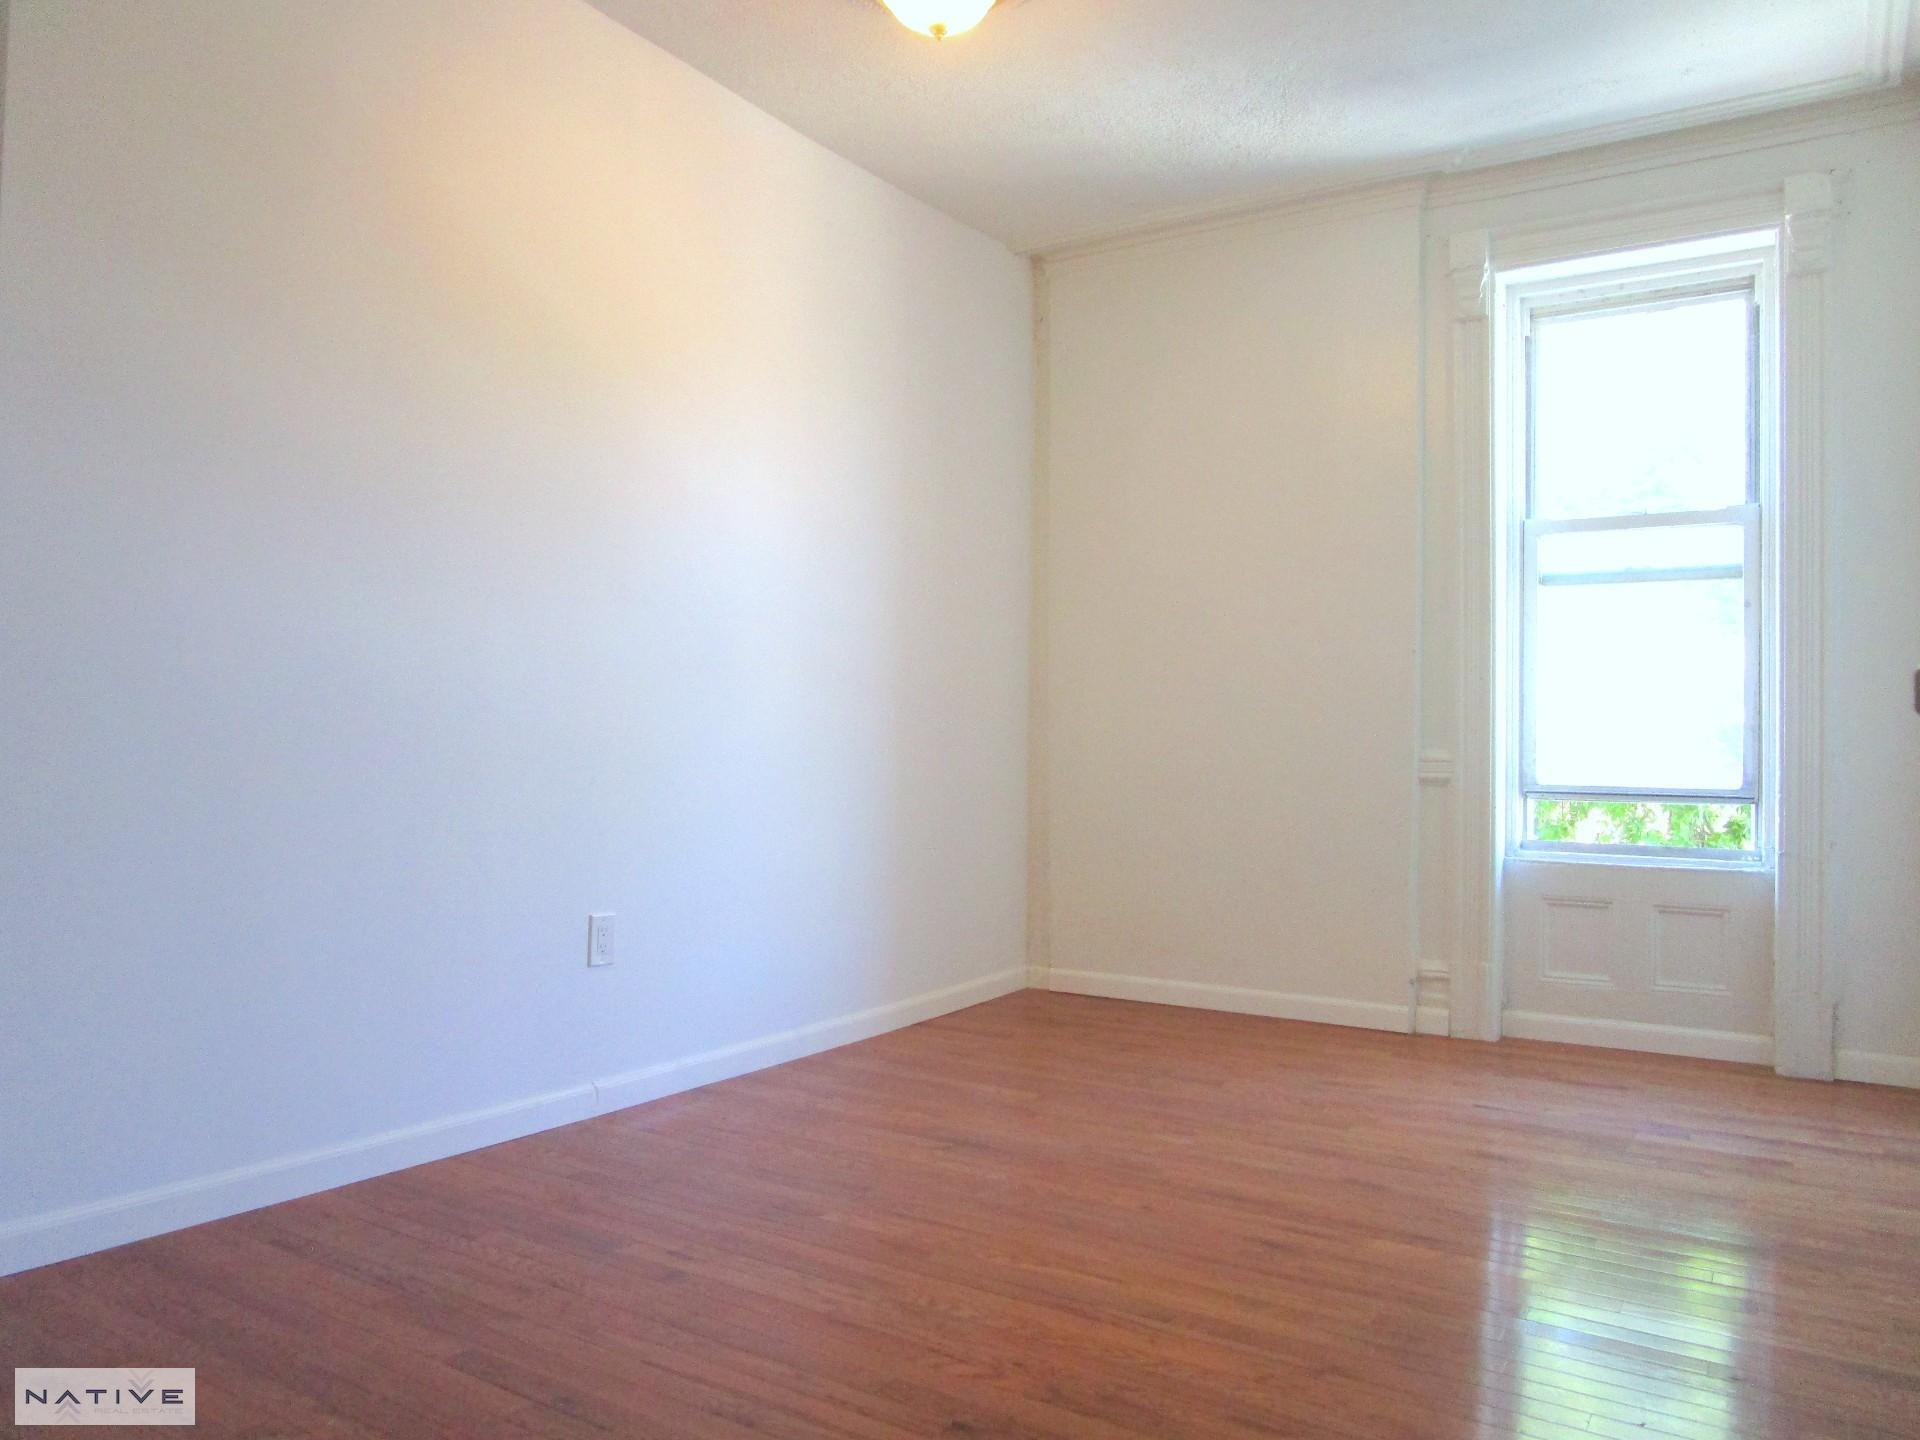 3 4 Bedroom Apartment For Rent - Search your favorite Image